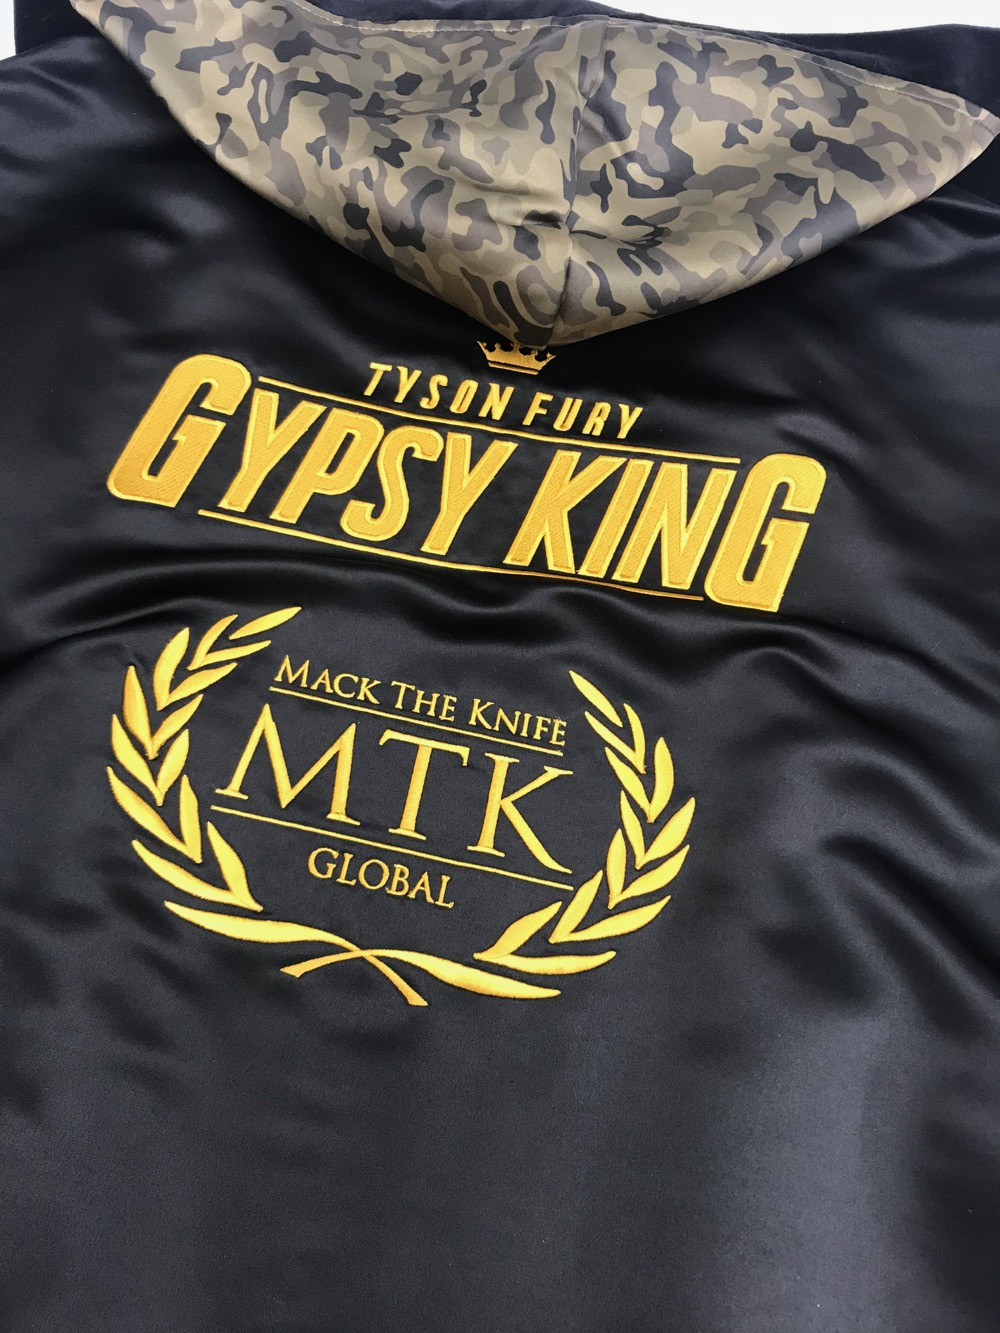 b4aeb7a663d Tyson Fury Camouflage Boxing Shorts and Robe | Suzi Wong Creations